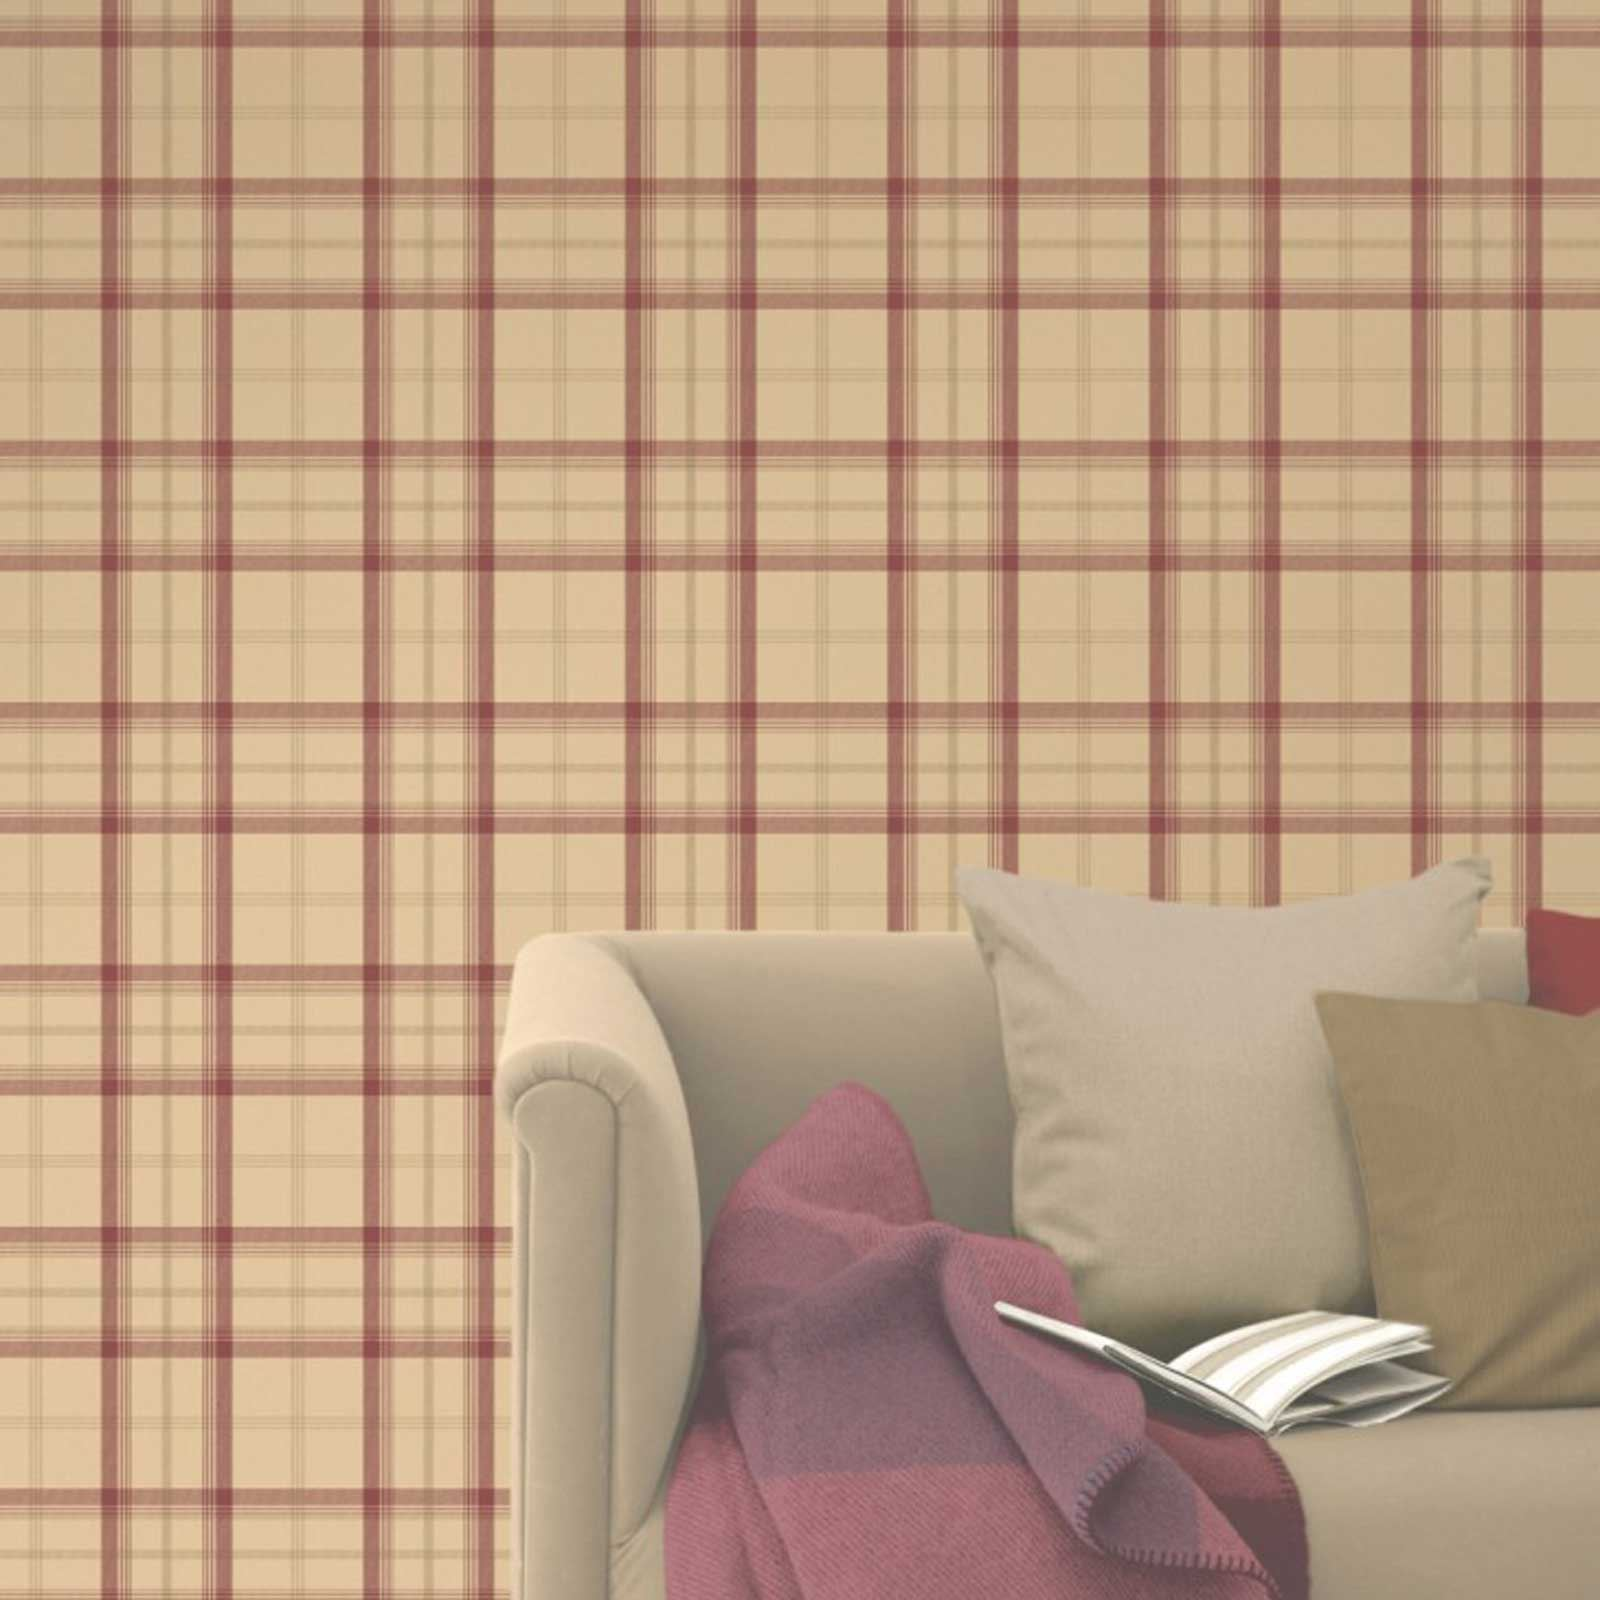 TARTAN WALLPAPER PLAID CHECKED DESIGNS RED GOLD